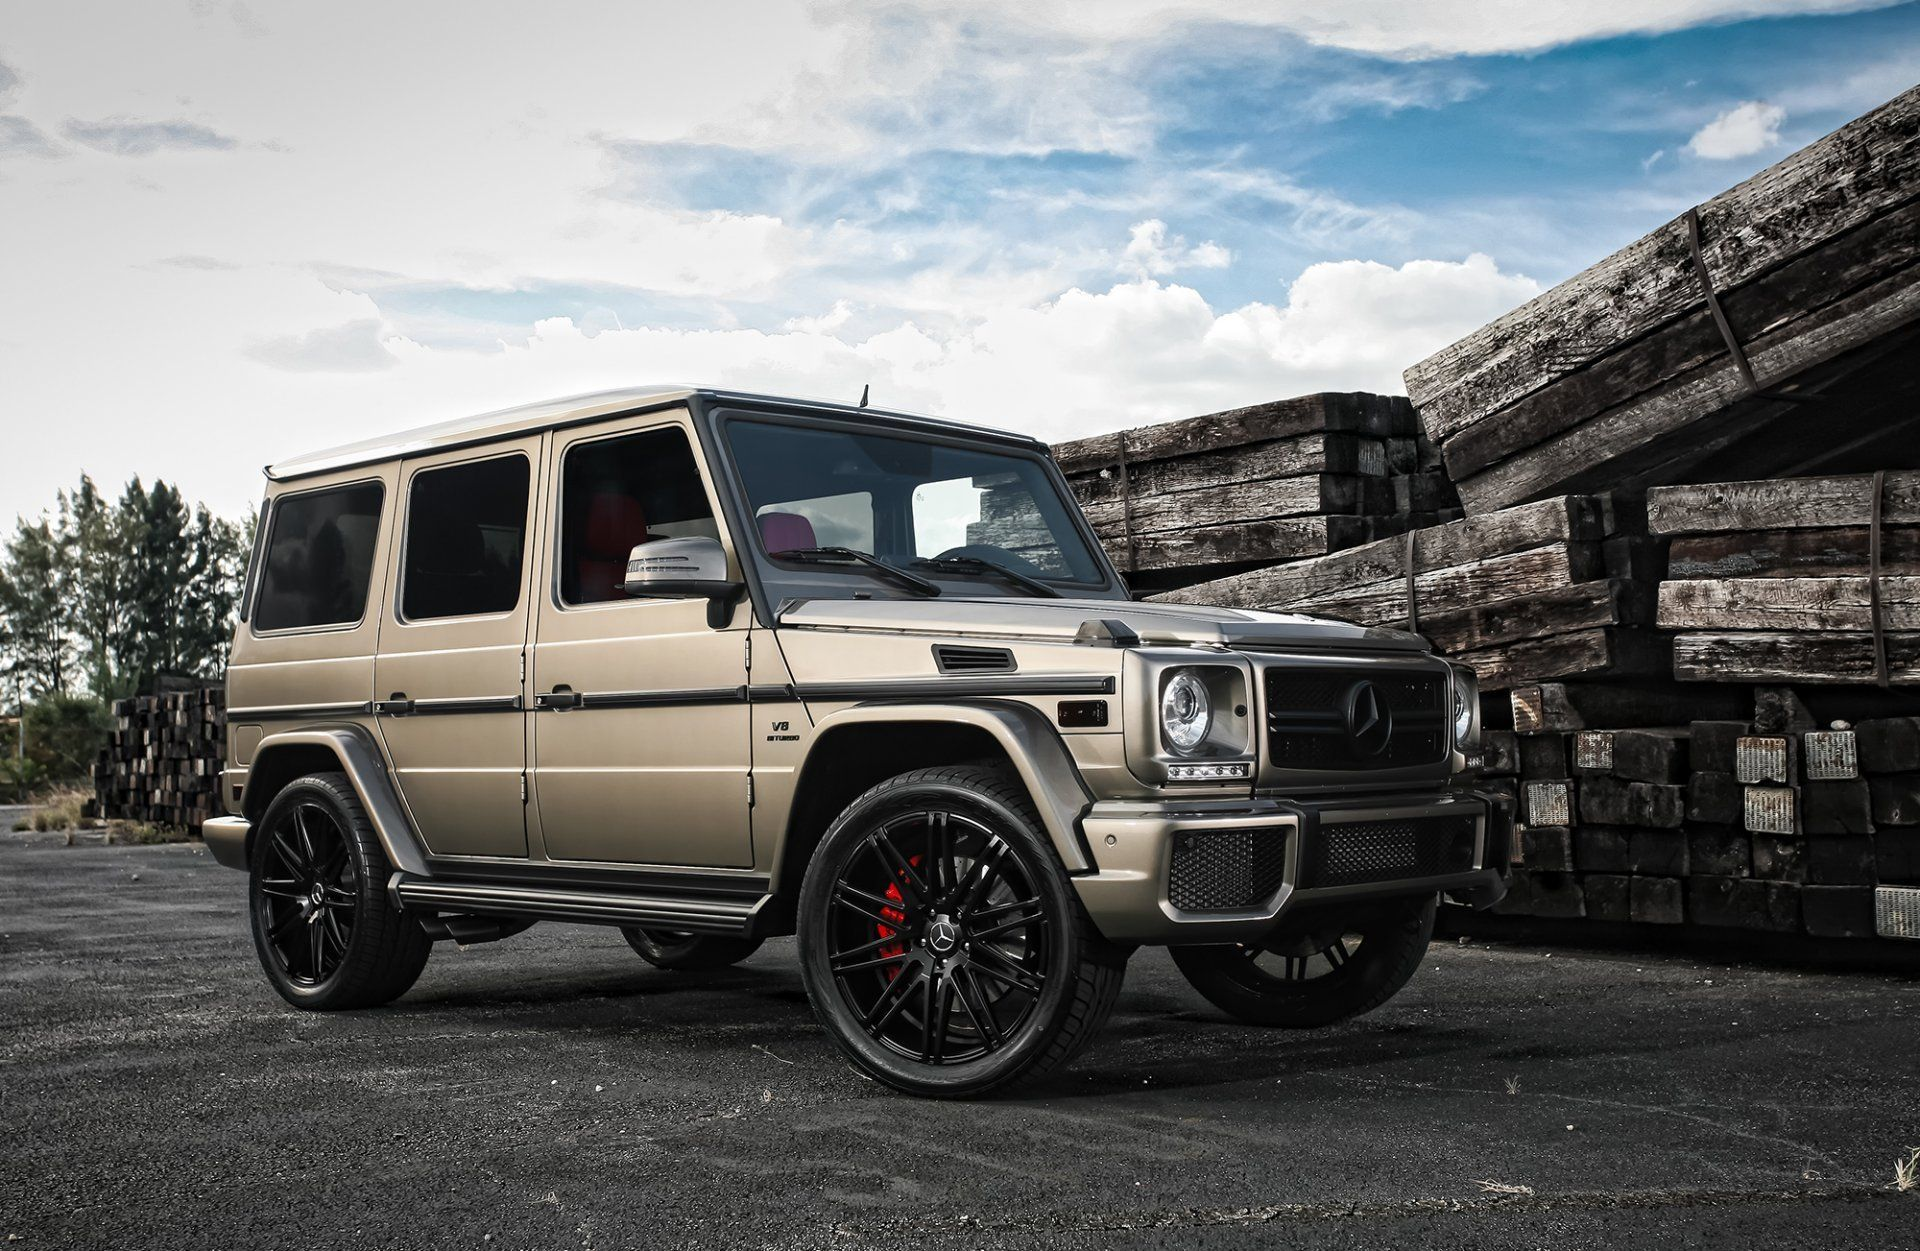 Mercedes Amg G63 Wallpapers Top Free Mercedes Amg G63 Backgrounds Wallpaperaccess